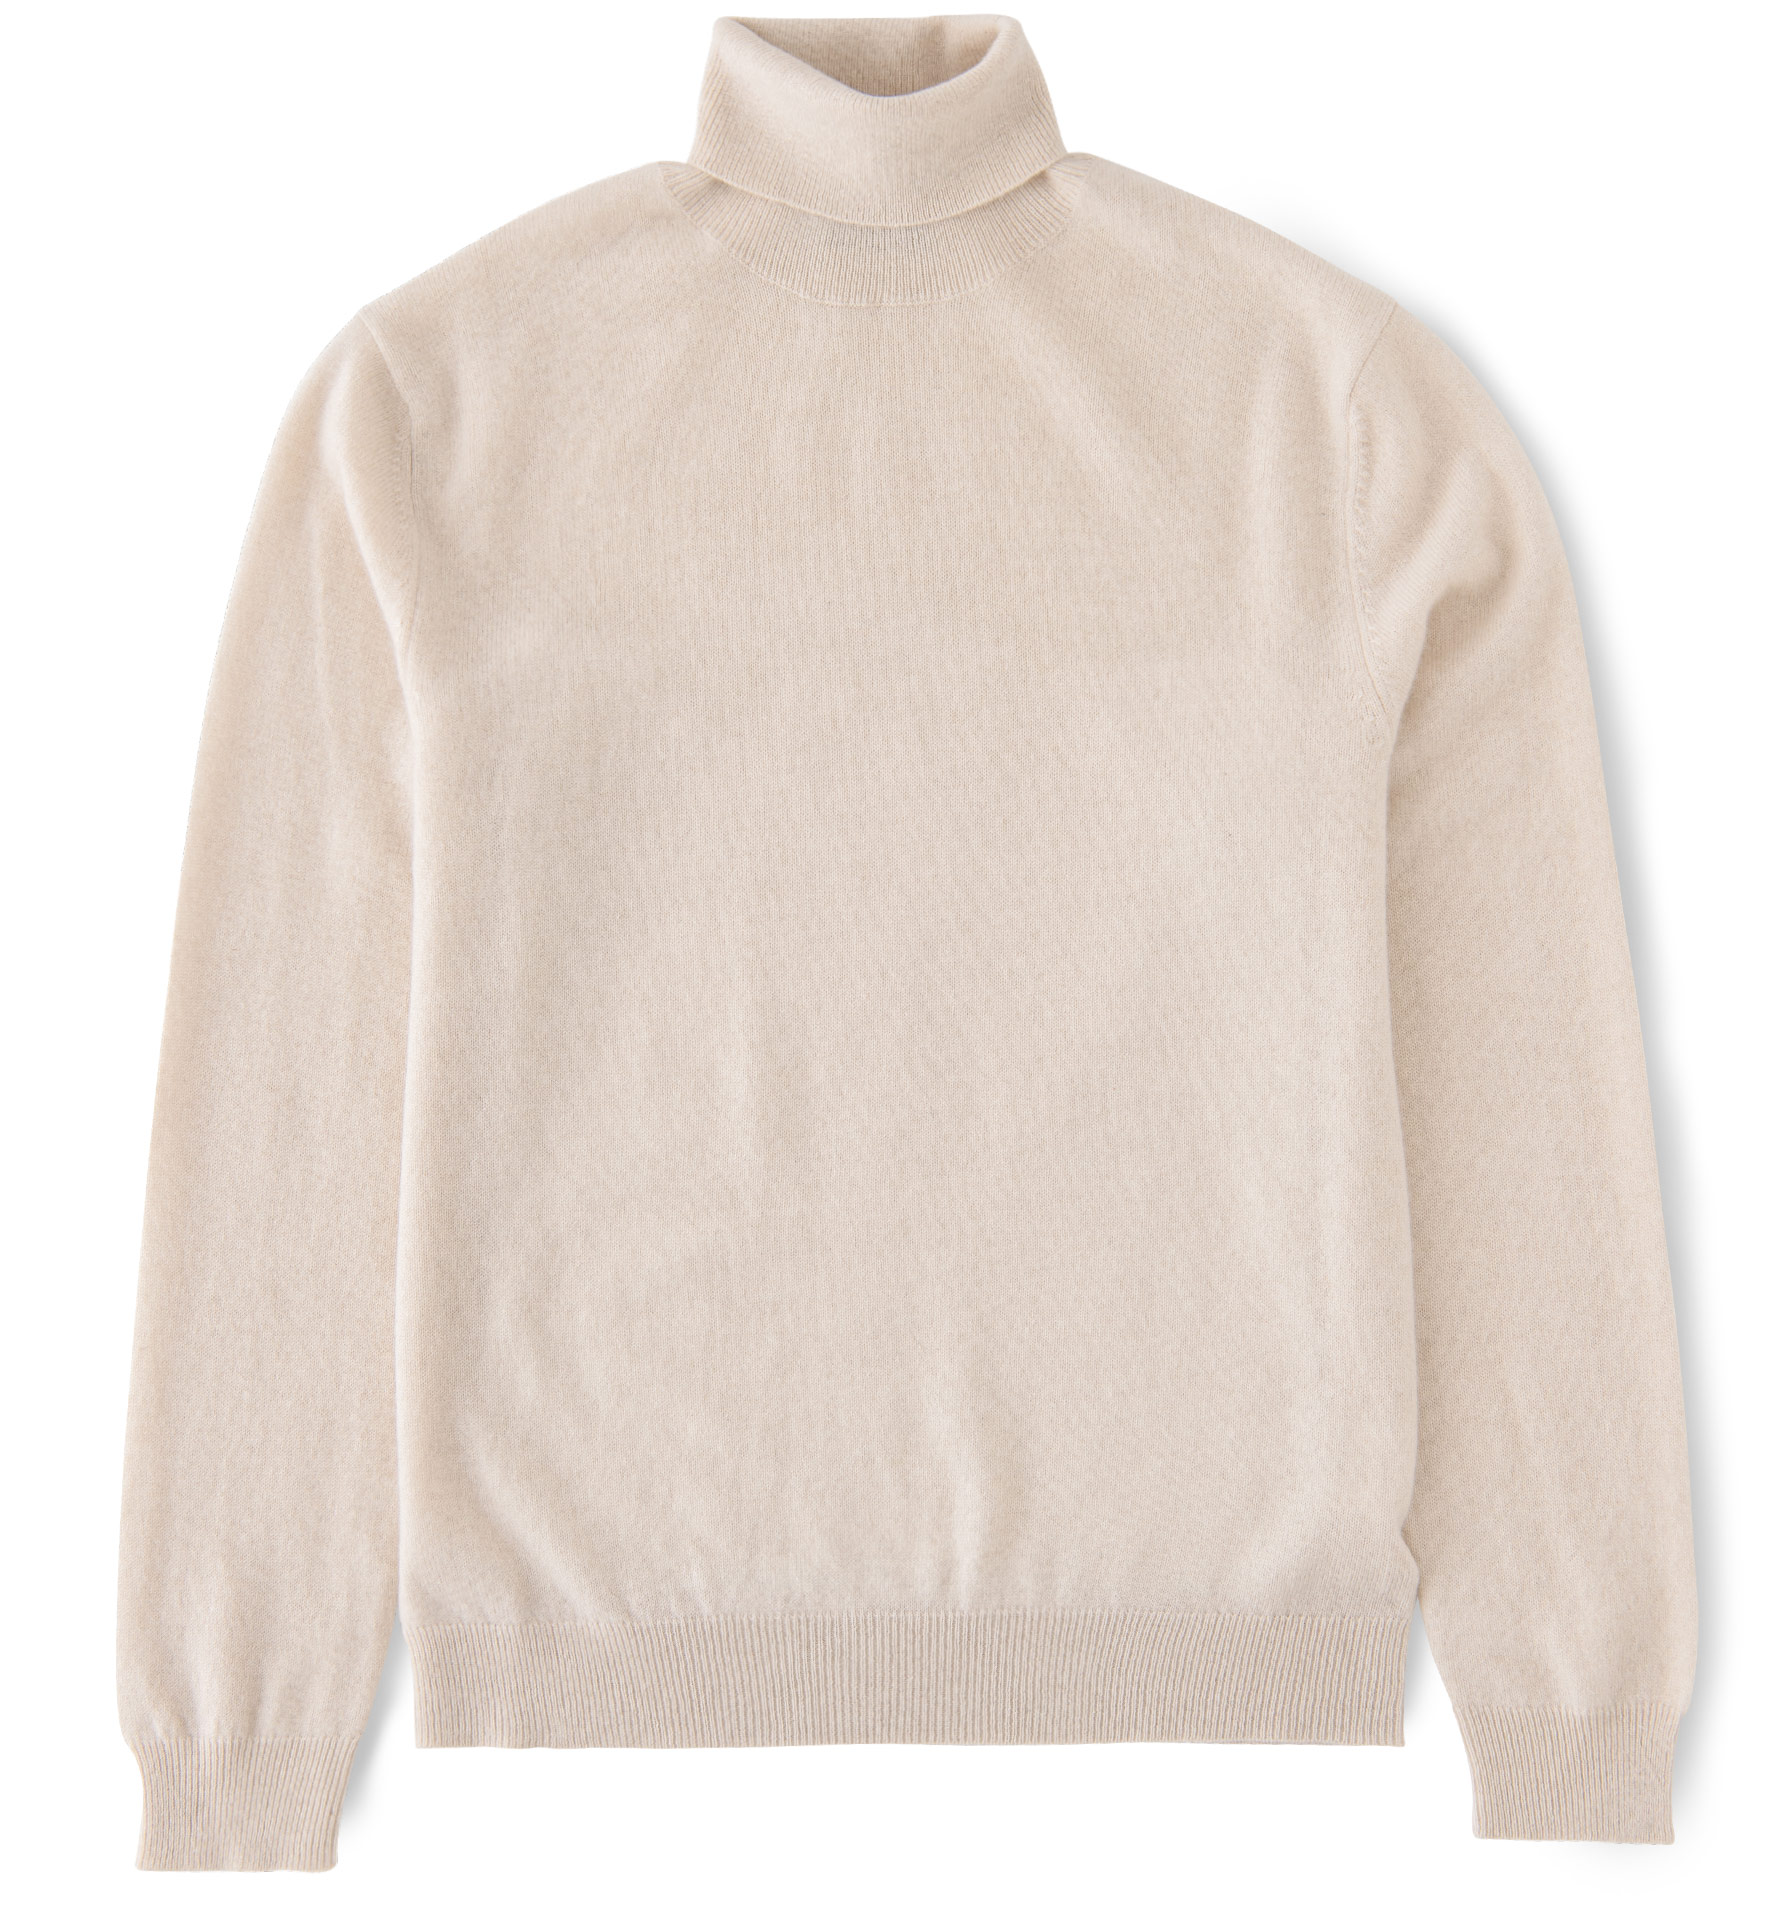 Crewneck Turtleneck Sweater in 5 Colors